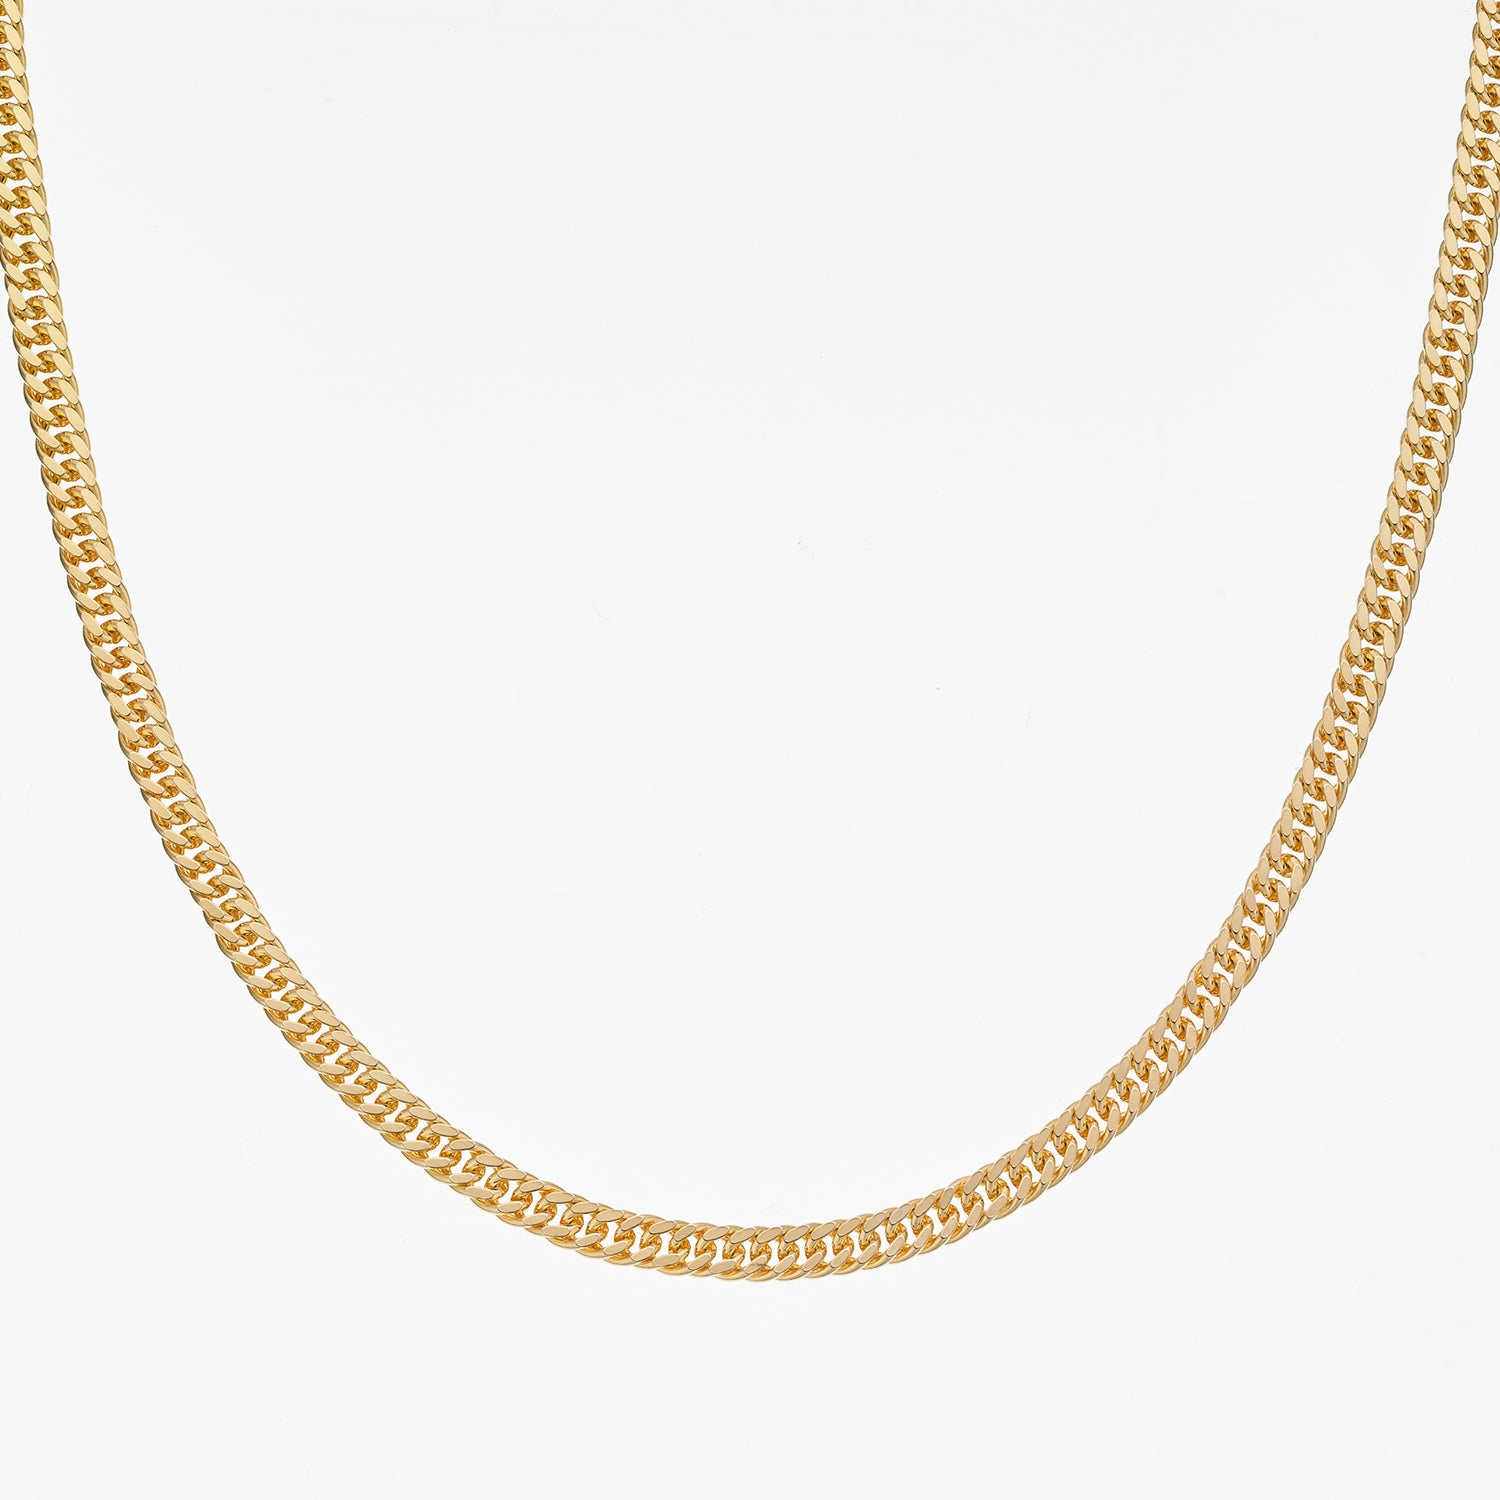 18ct Yellow Gold 2.5mm Double Diamond Cut Curb in 55cm